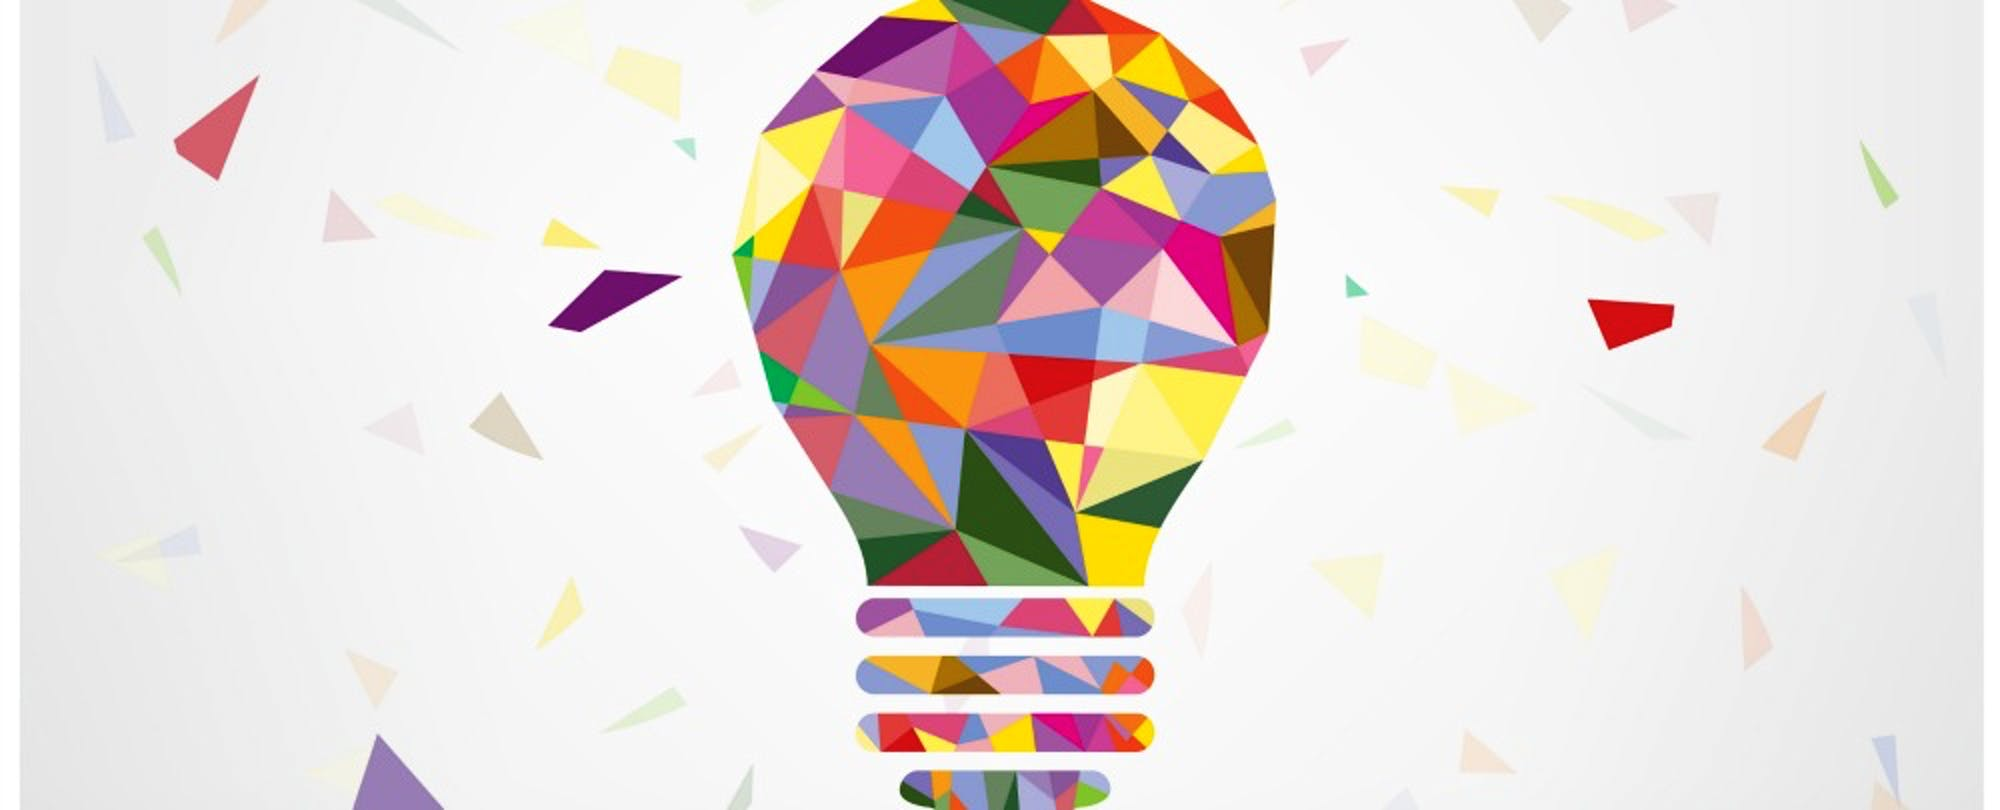 UMUC's Blueprint for Designing a Culture of Constant Innovation